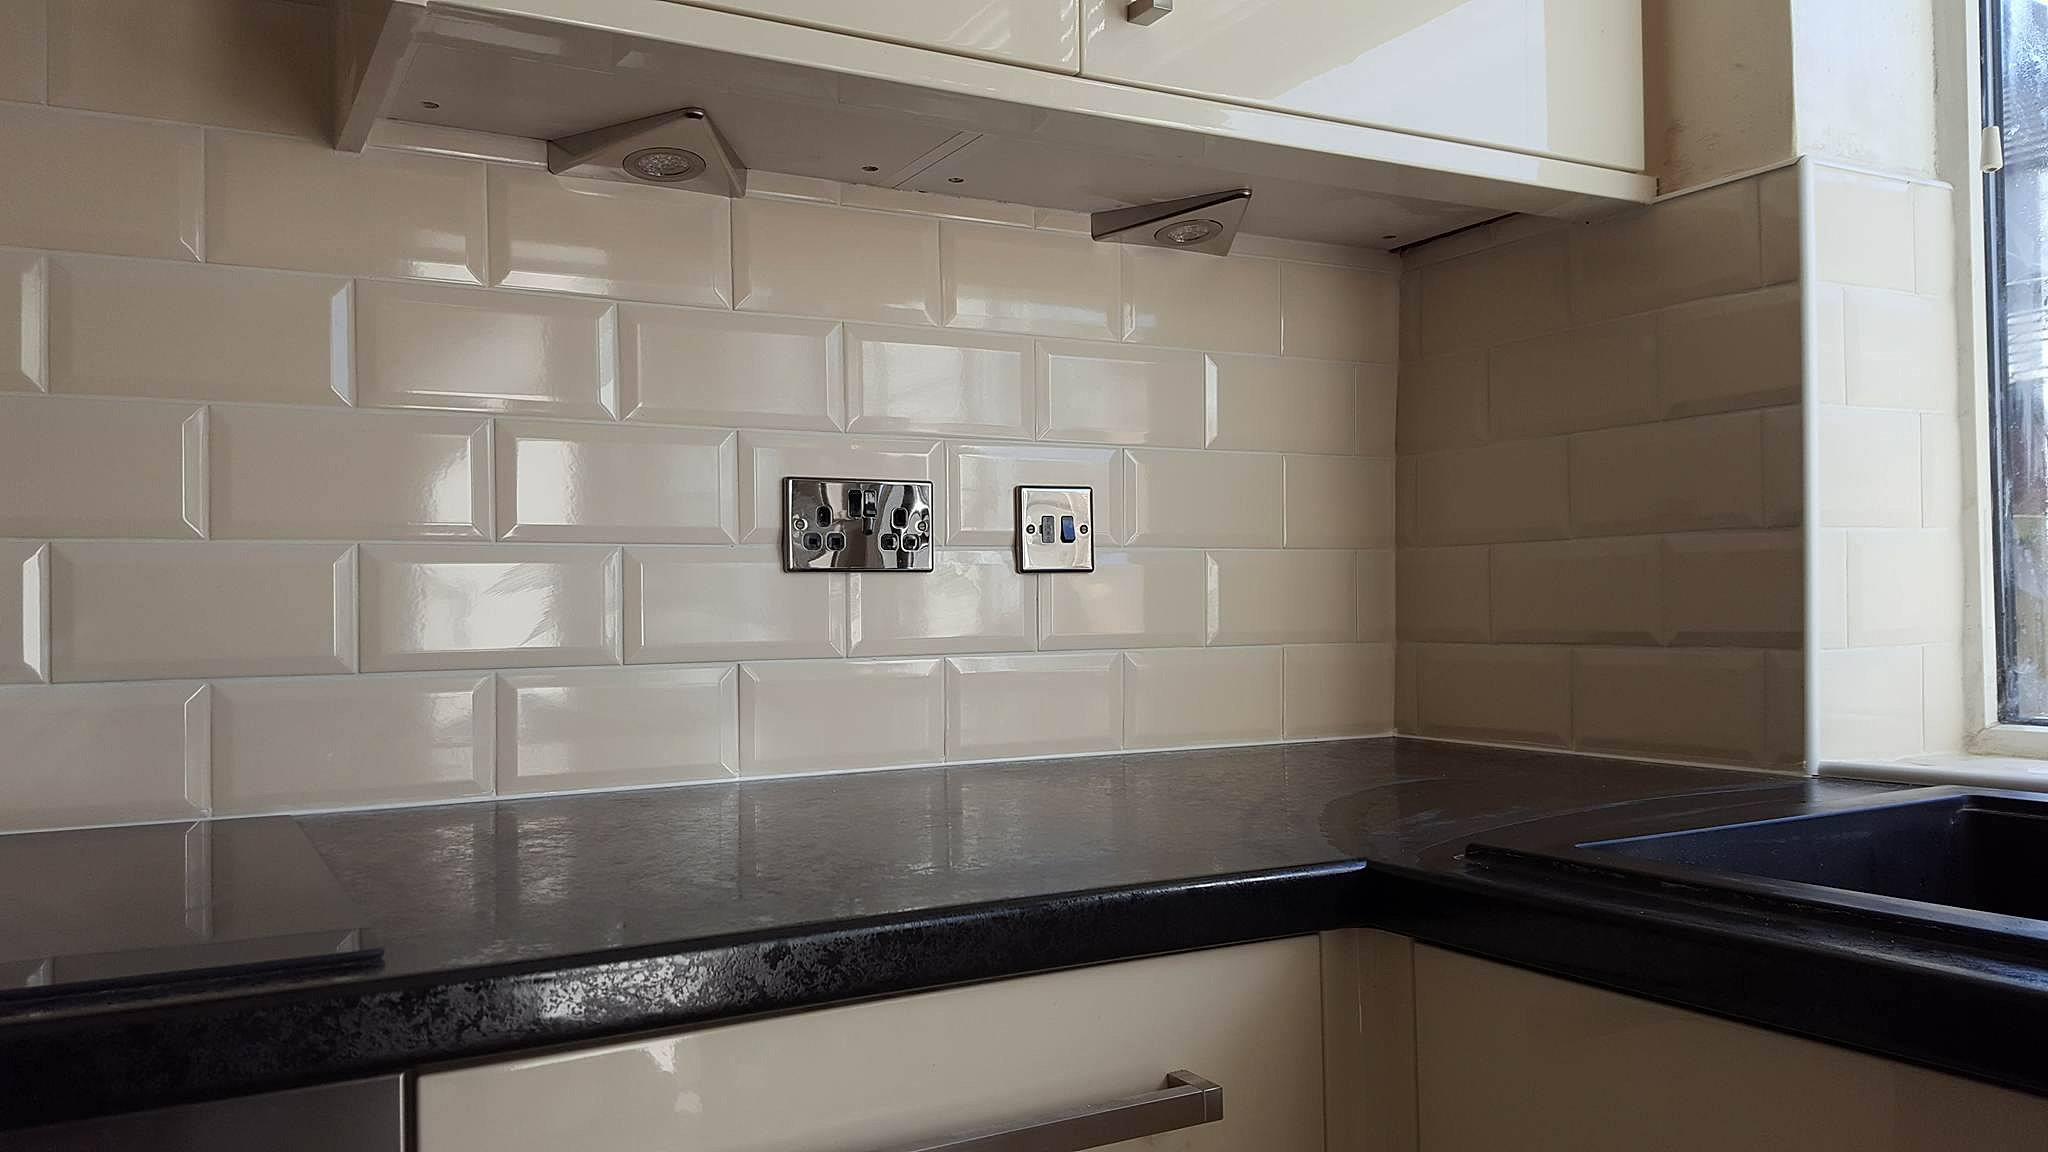 Wickes Kitchen Floor Tiles Tomahawk Tiling Tiling Services In Barnsley Tiler In Barnsley